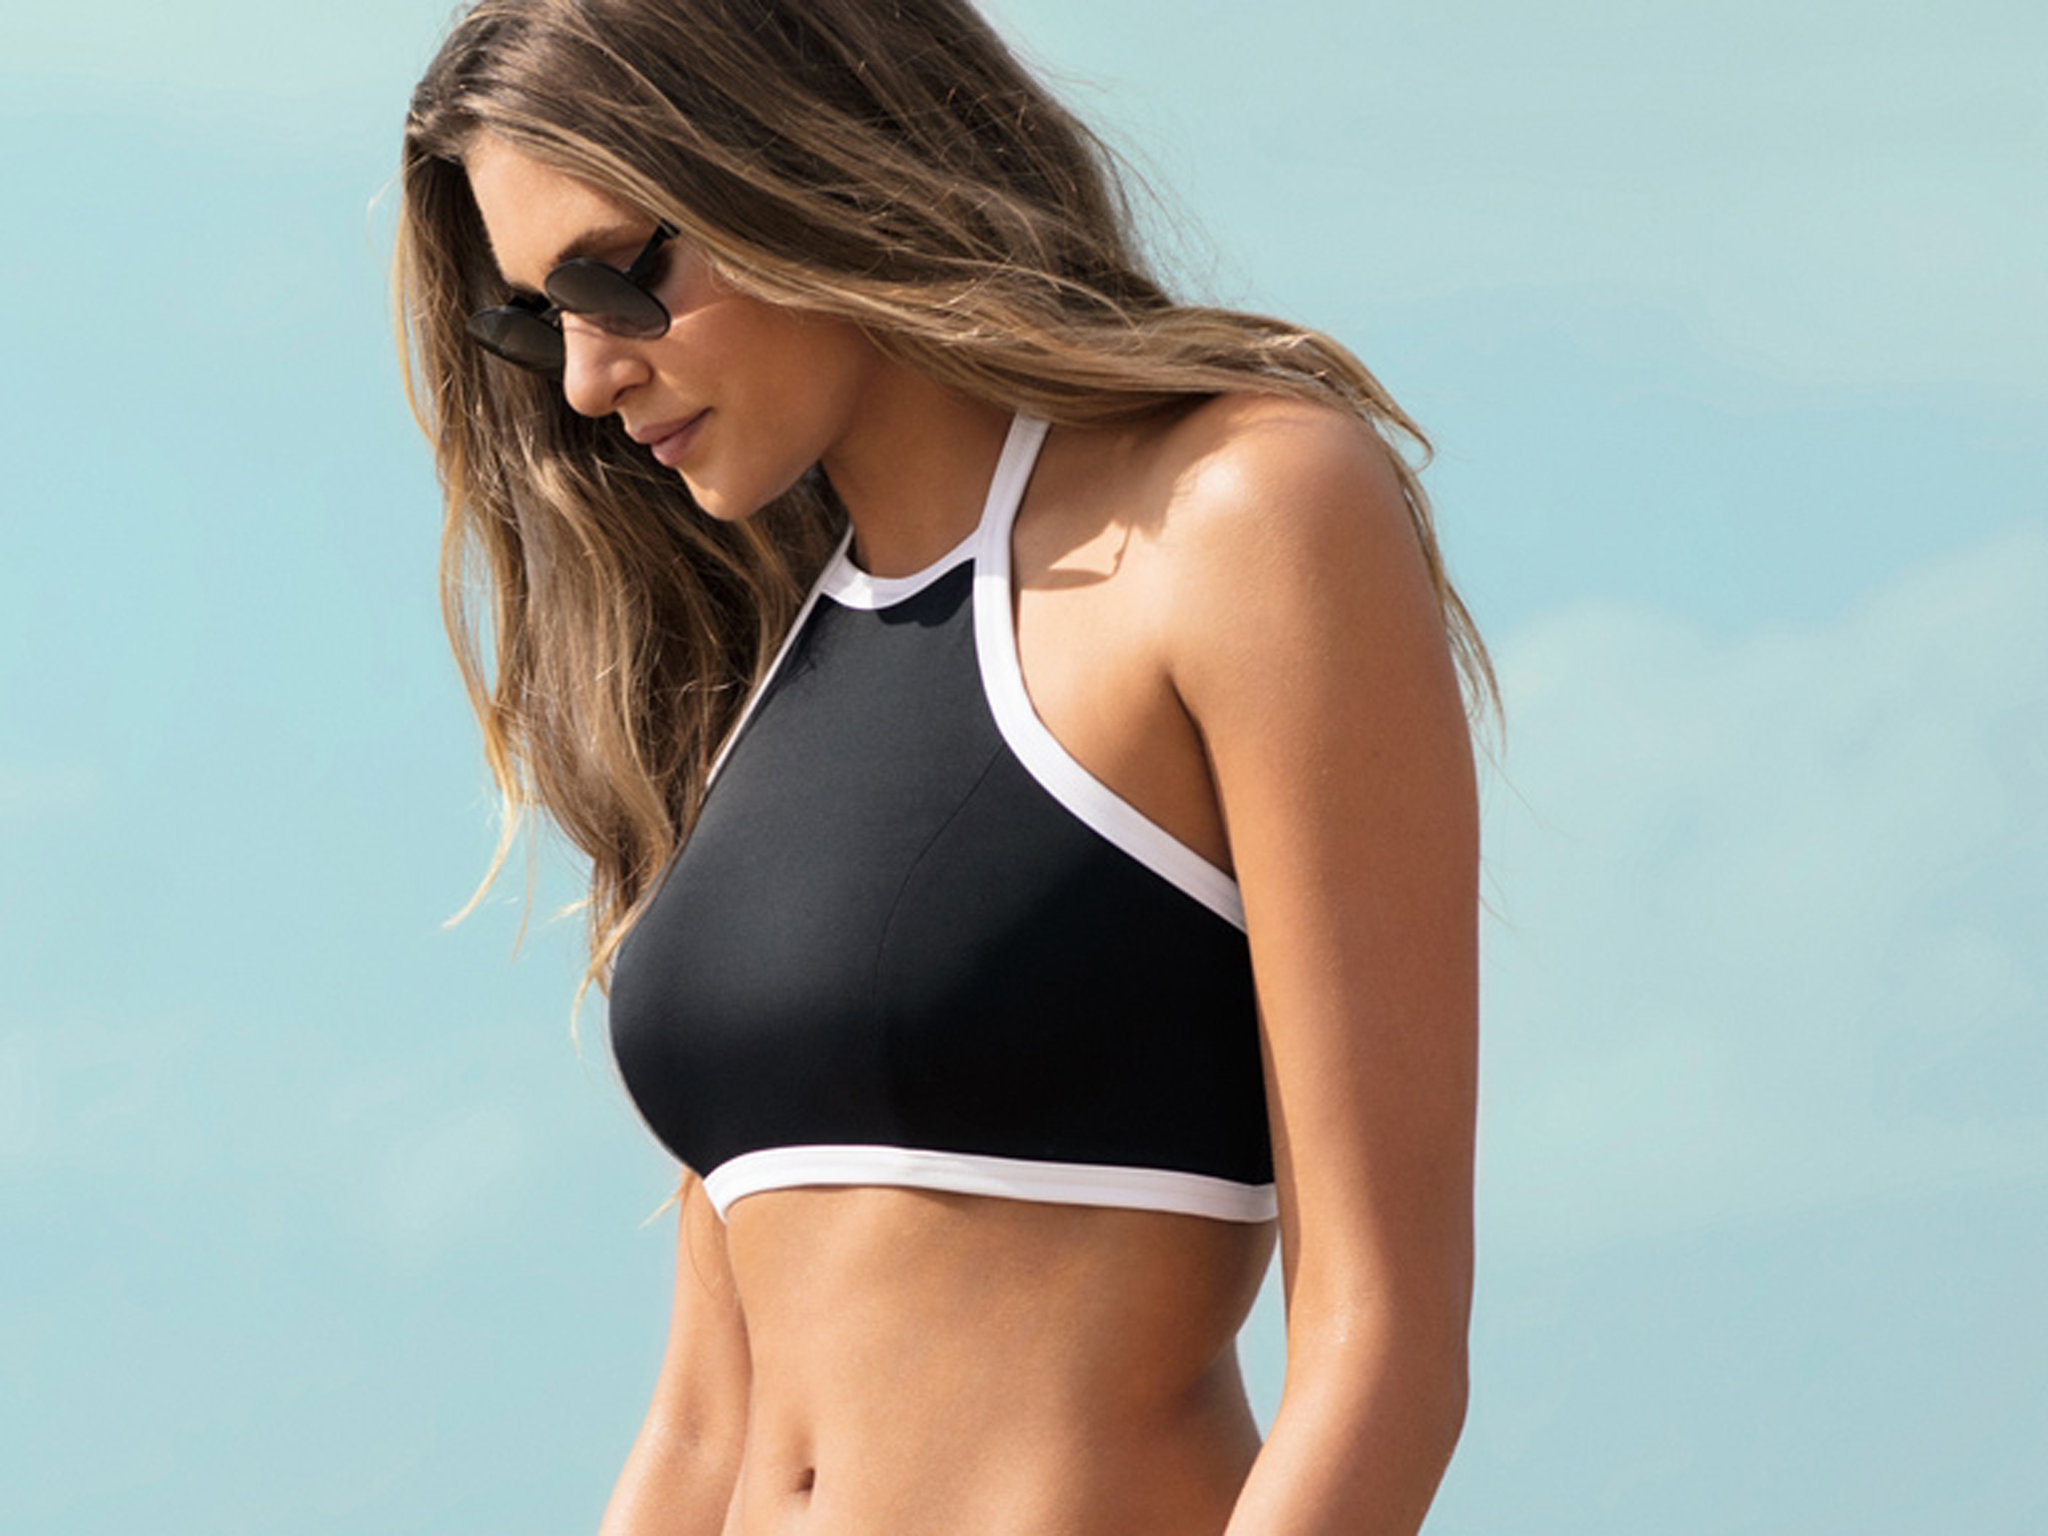 Shop Online for Seafolly bikinis and swimwear at Coco Bay. Bikinis, swimsuits, beachwear and activewear from our favourite designer brands, including Seafolly, Banana Moon, Watercult, Moontide and Body Glove. Same day dispatch before 2 pm - Free UK .